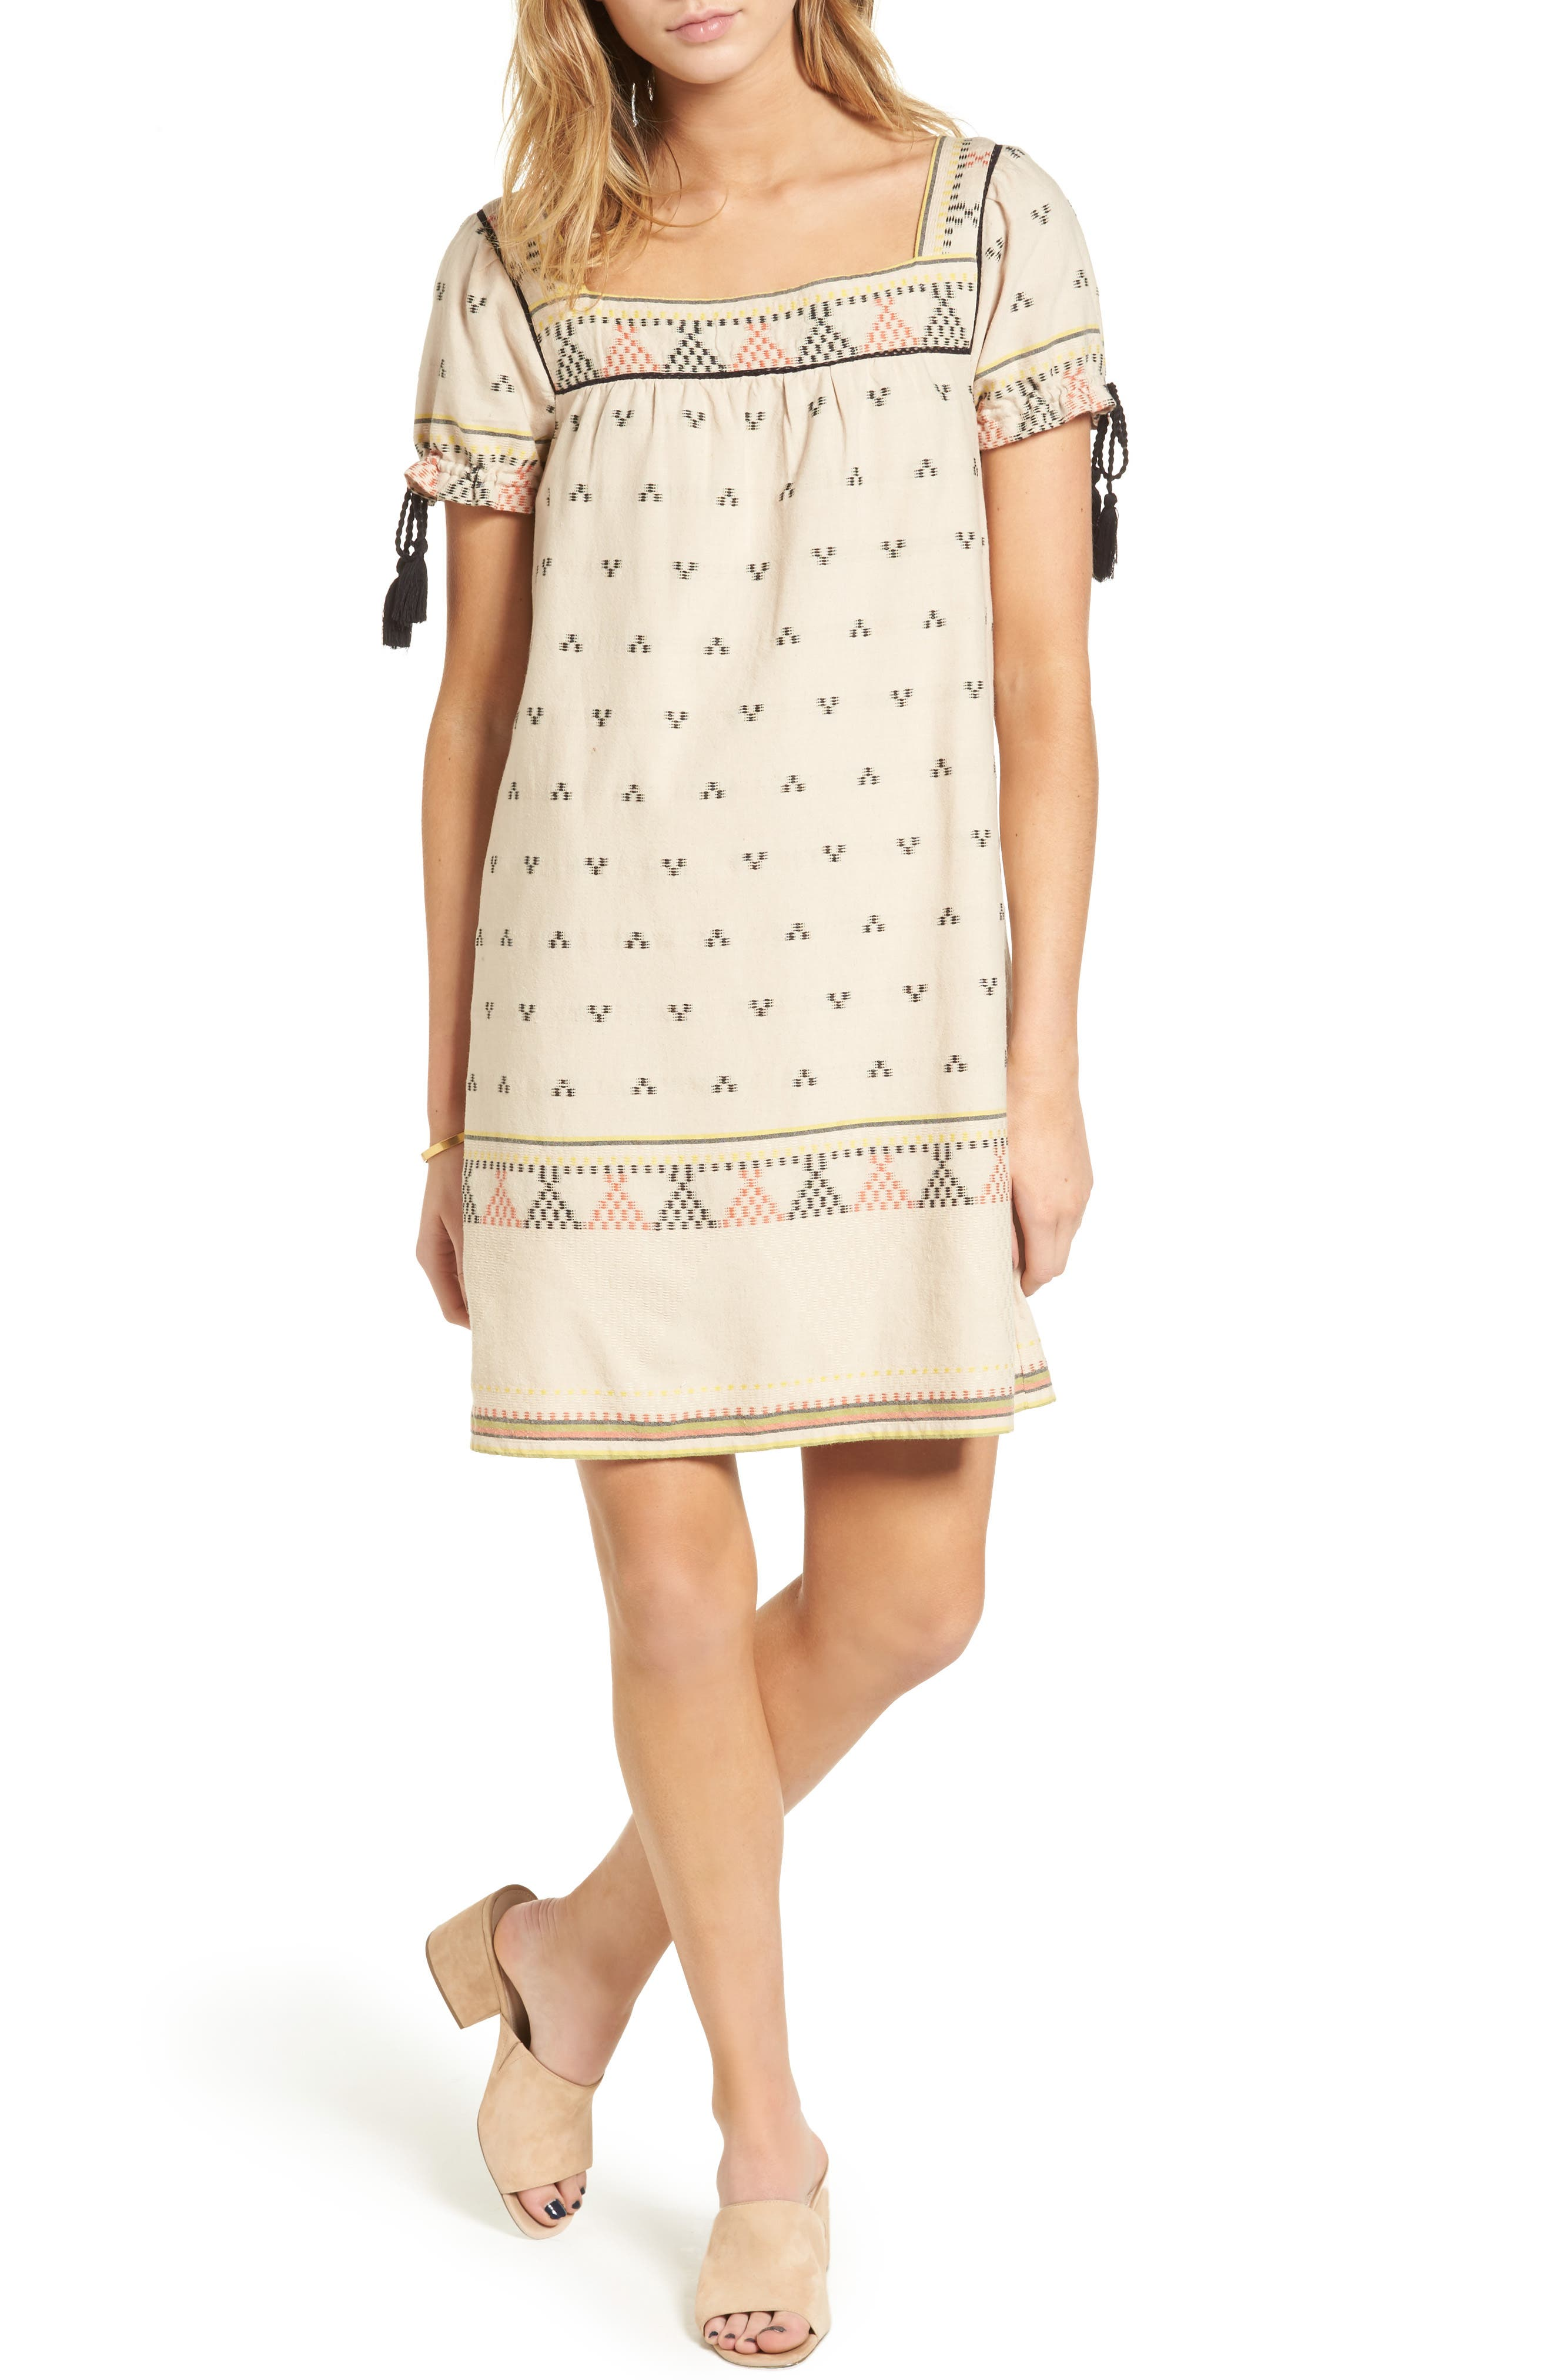 Madewell Jeanette Shift Dress